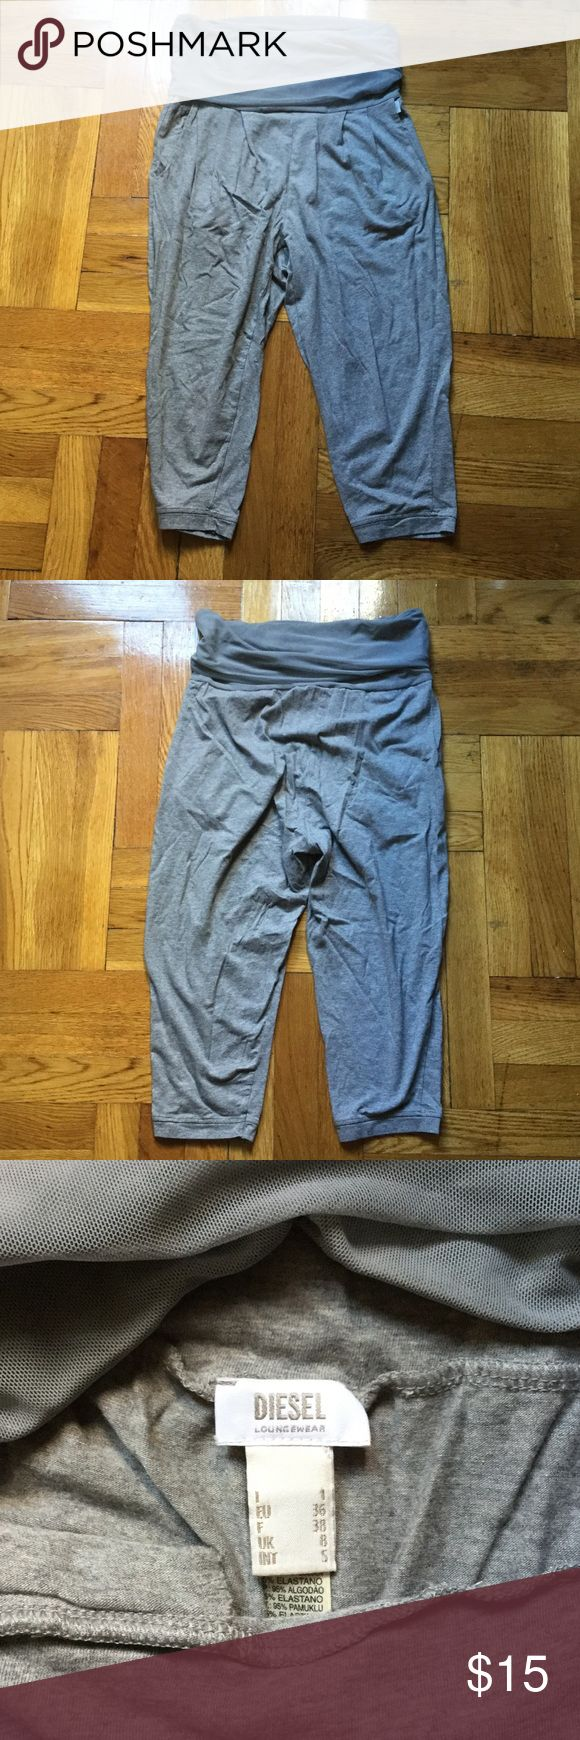 Diesel Lounge Pants Cropped lounge pants. Slight drop crotch with pocket. True to size and in great condition. Diesel Pants Track Pants & Joggers